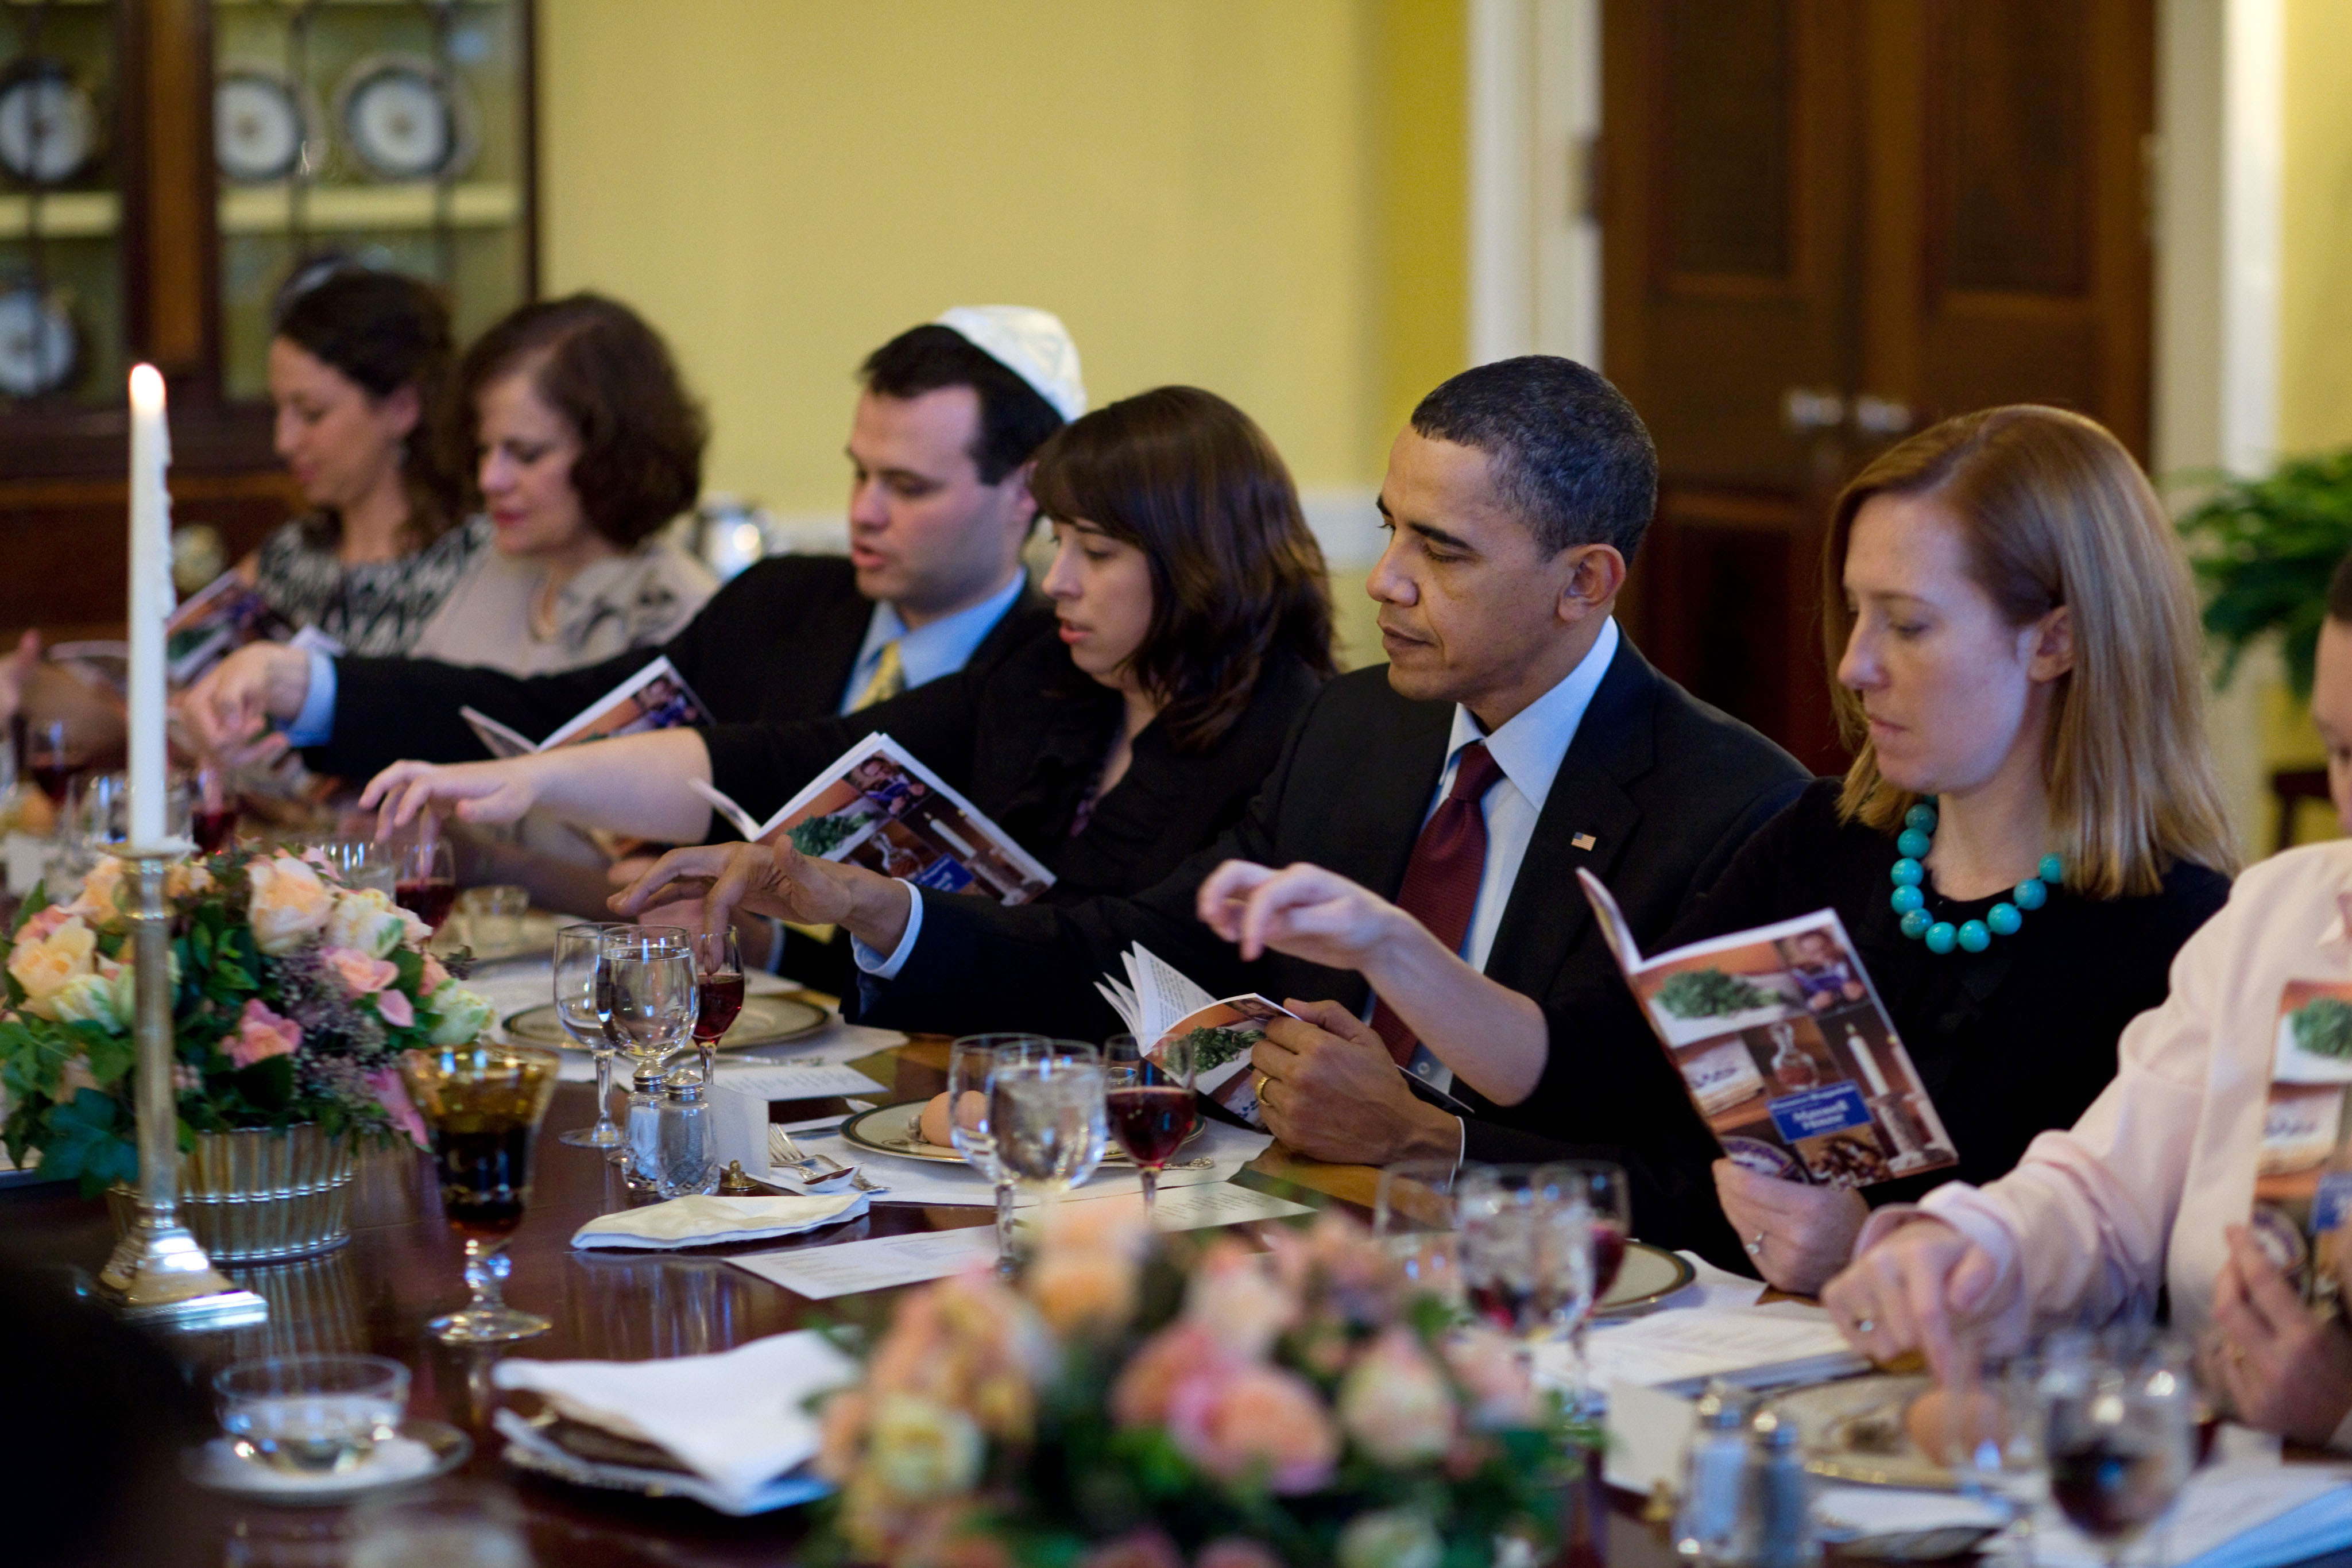 Obama and guests dip their fingers in wine to recite the ten plagues